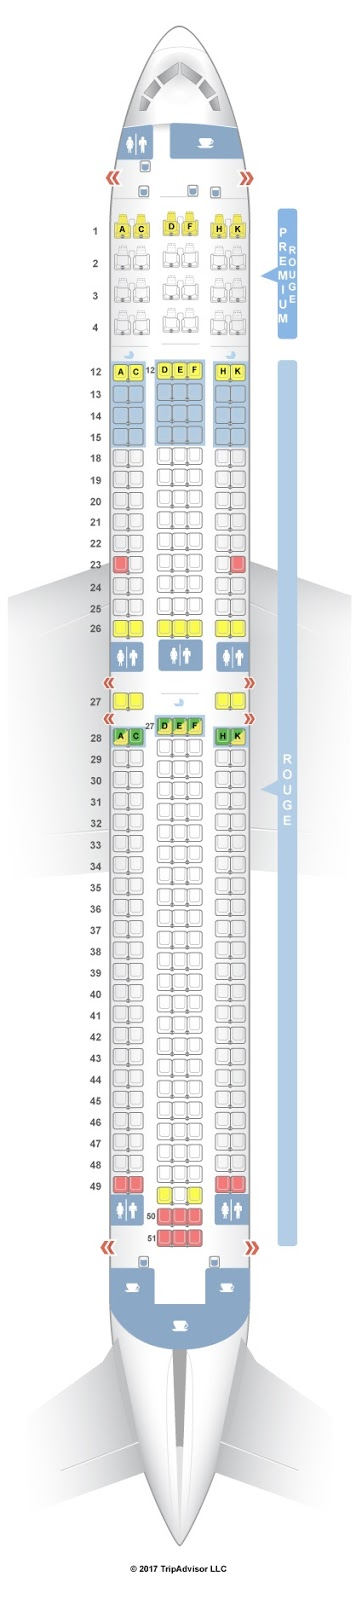 Air Canada 763 Seat Map ✓ Beautiful Air Canada Boeing 767 300 Seat Map   Seat Inspiration